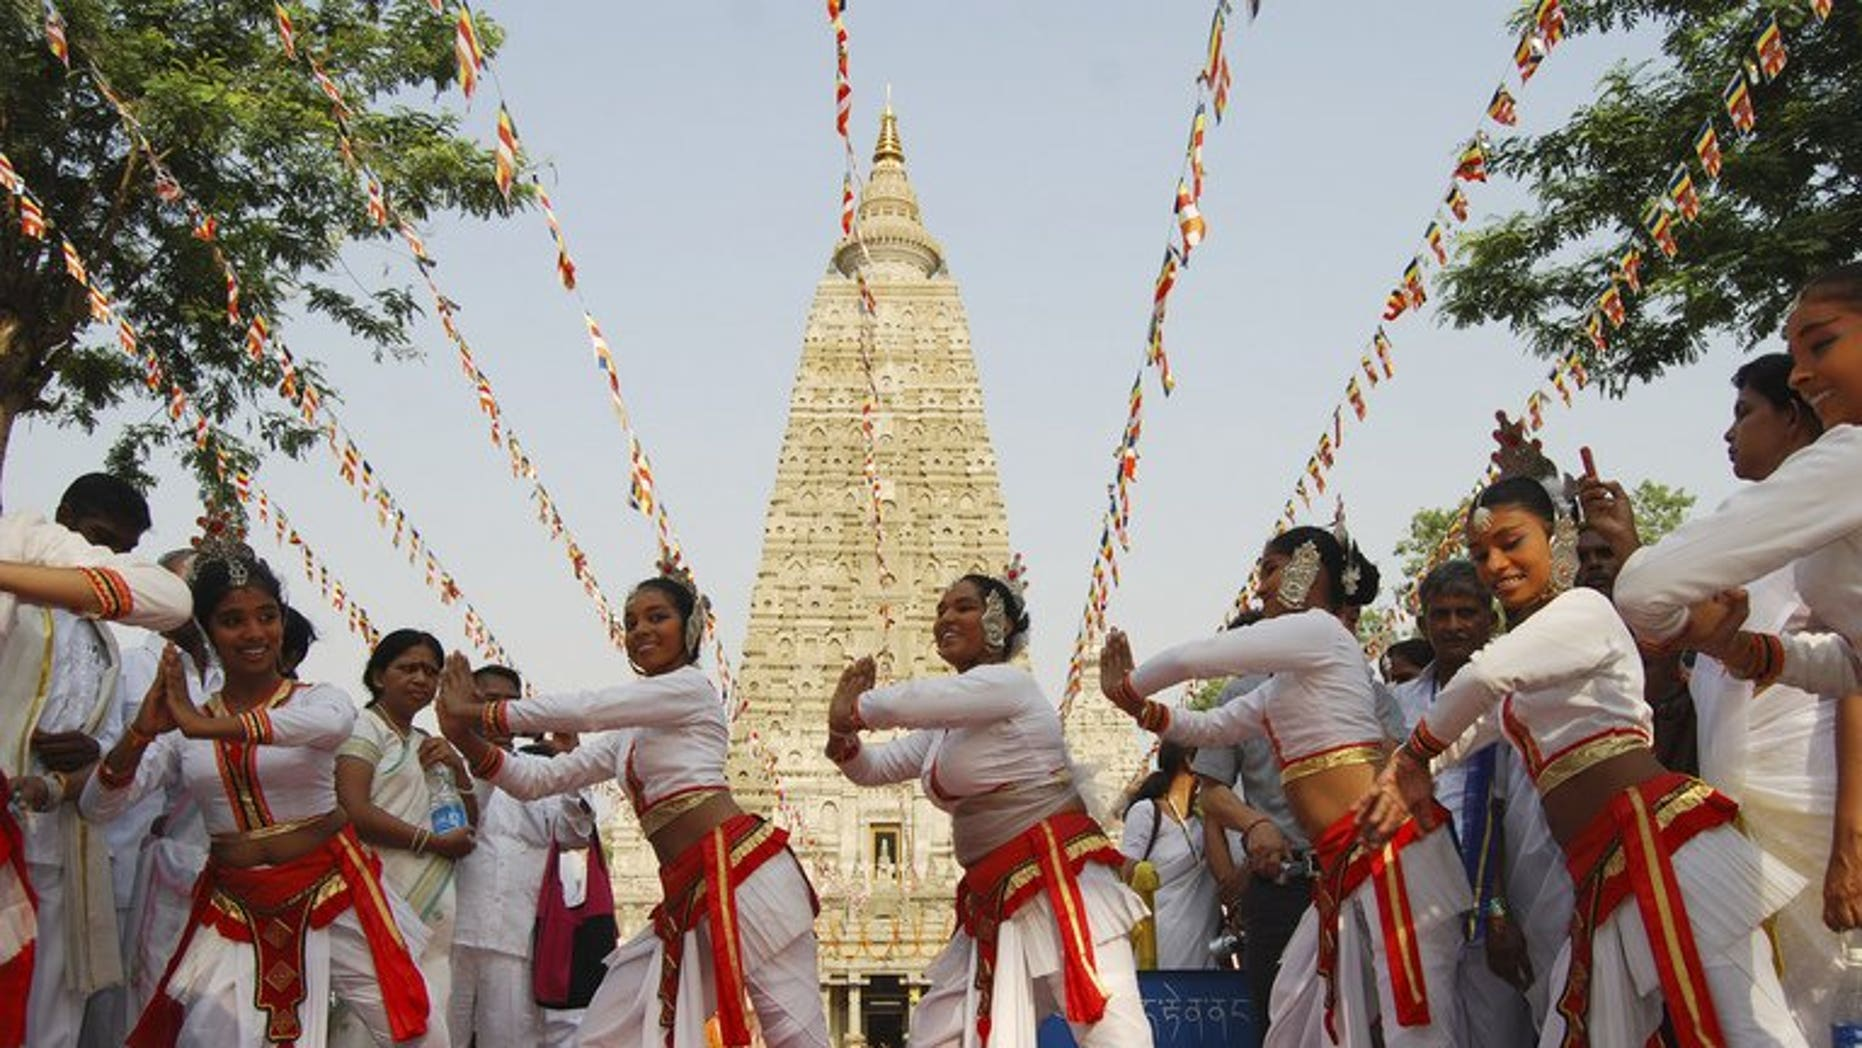 This file photo shows traditional dancers performing in front of Mahabodhi Temple in Bodhgaya, on May 17, 2011. Police reported multiple low-intensity blasts at the temple complex on Sunday, saying two people had been wounded but the temple was safe.